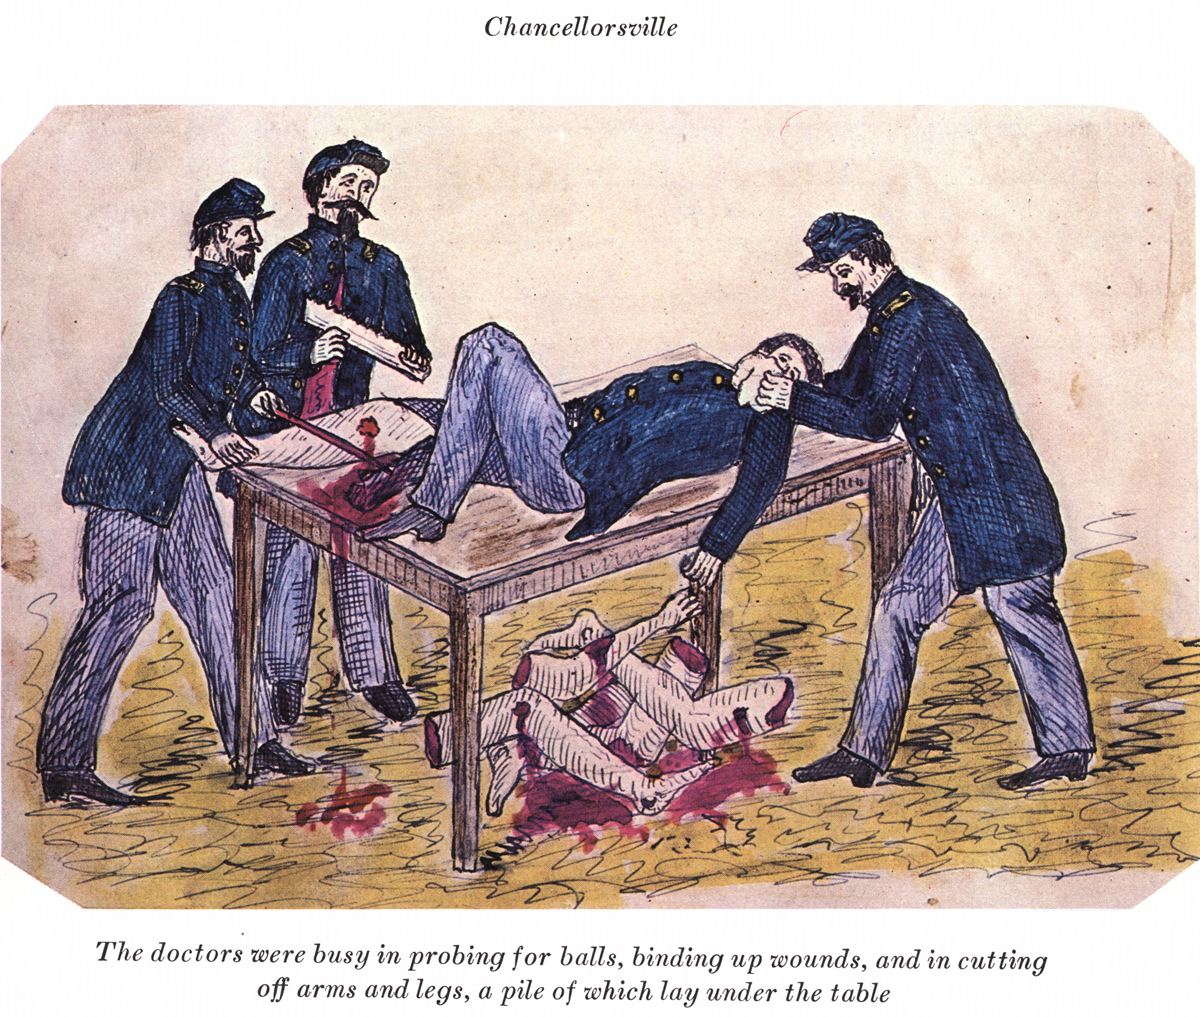 The doctors were busy in probing for balls binding up wounds and in